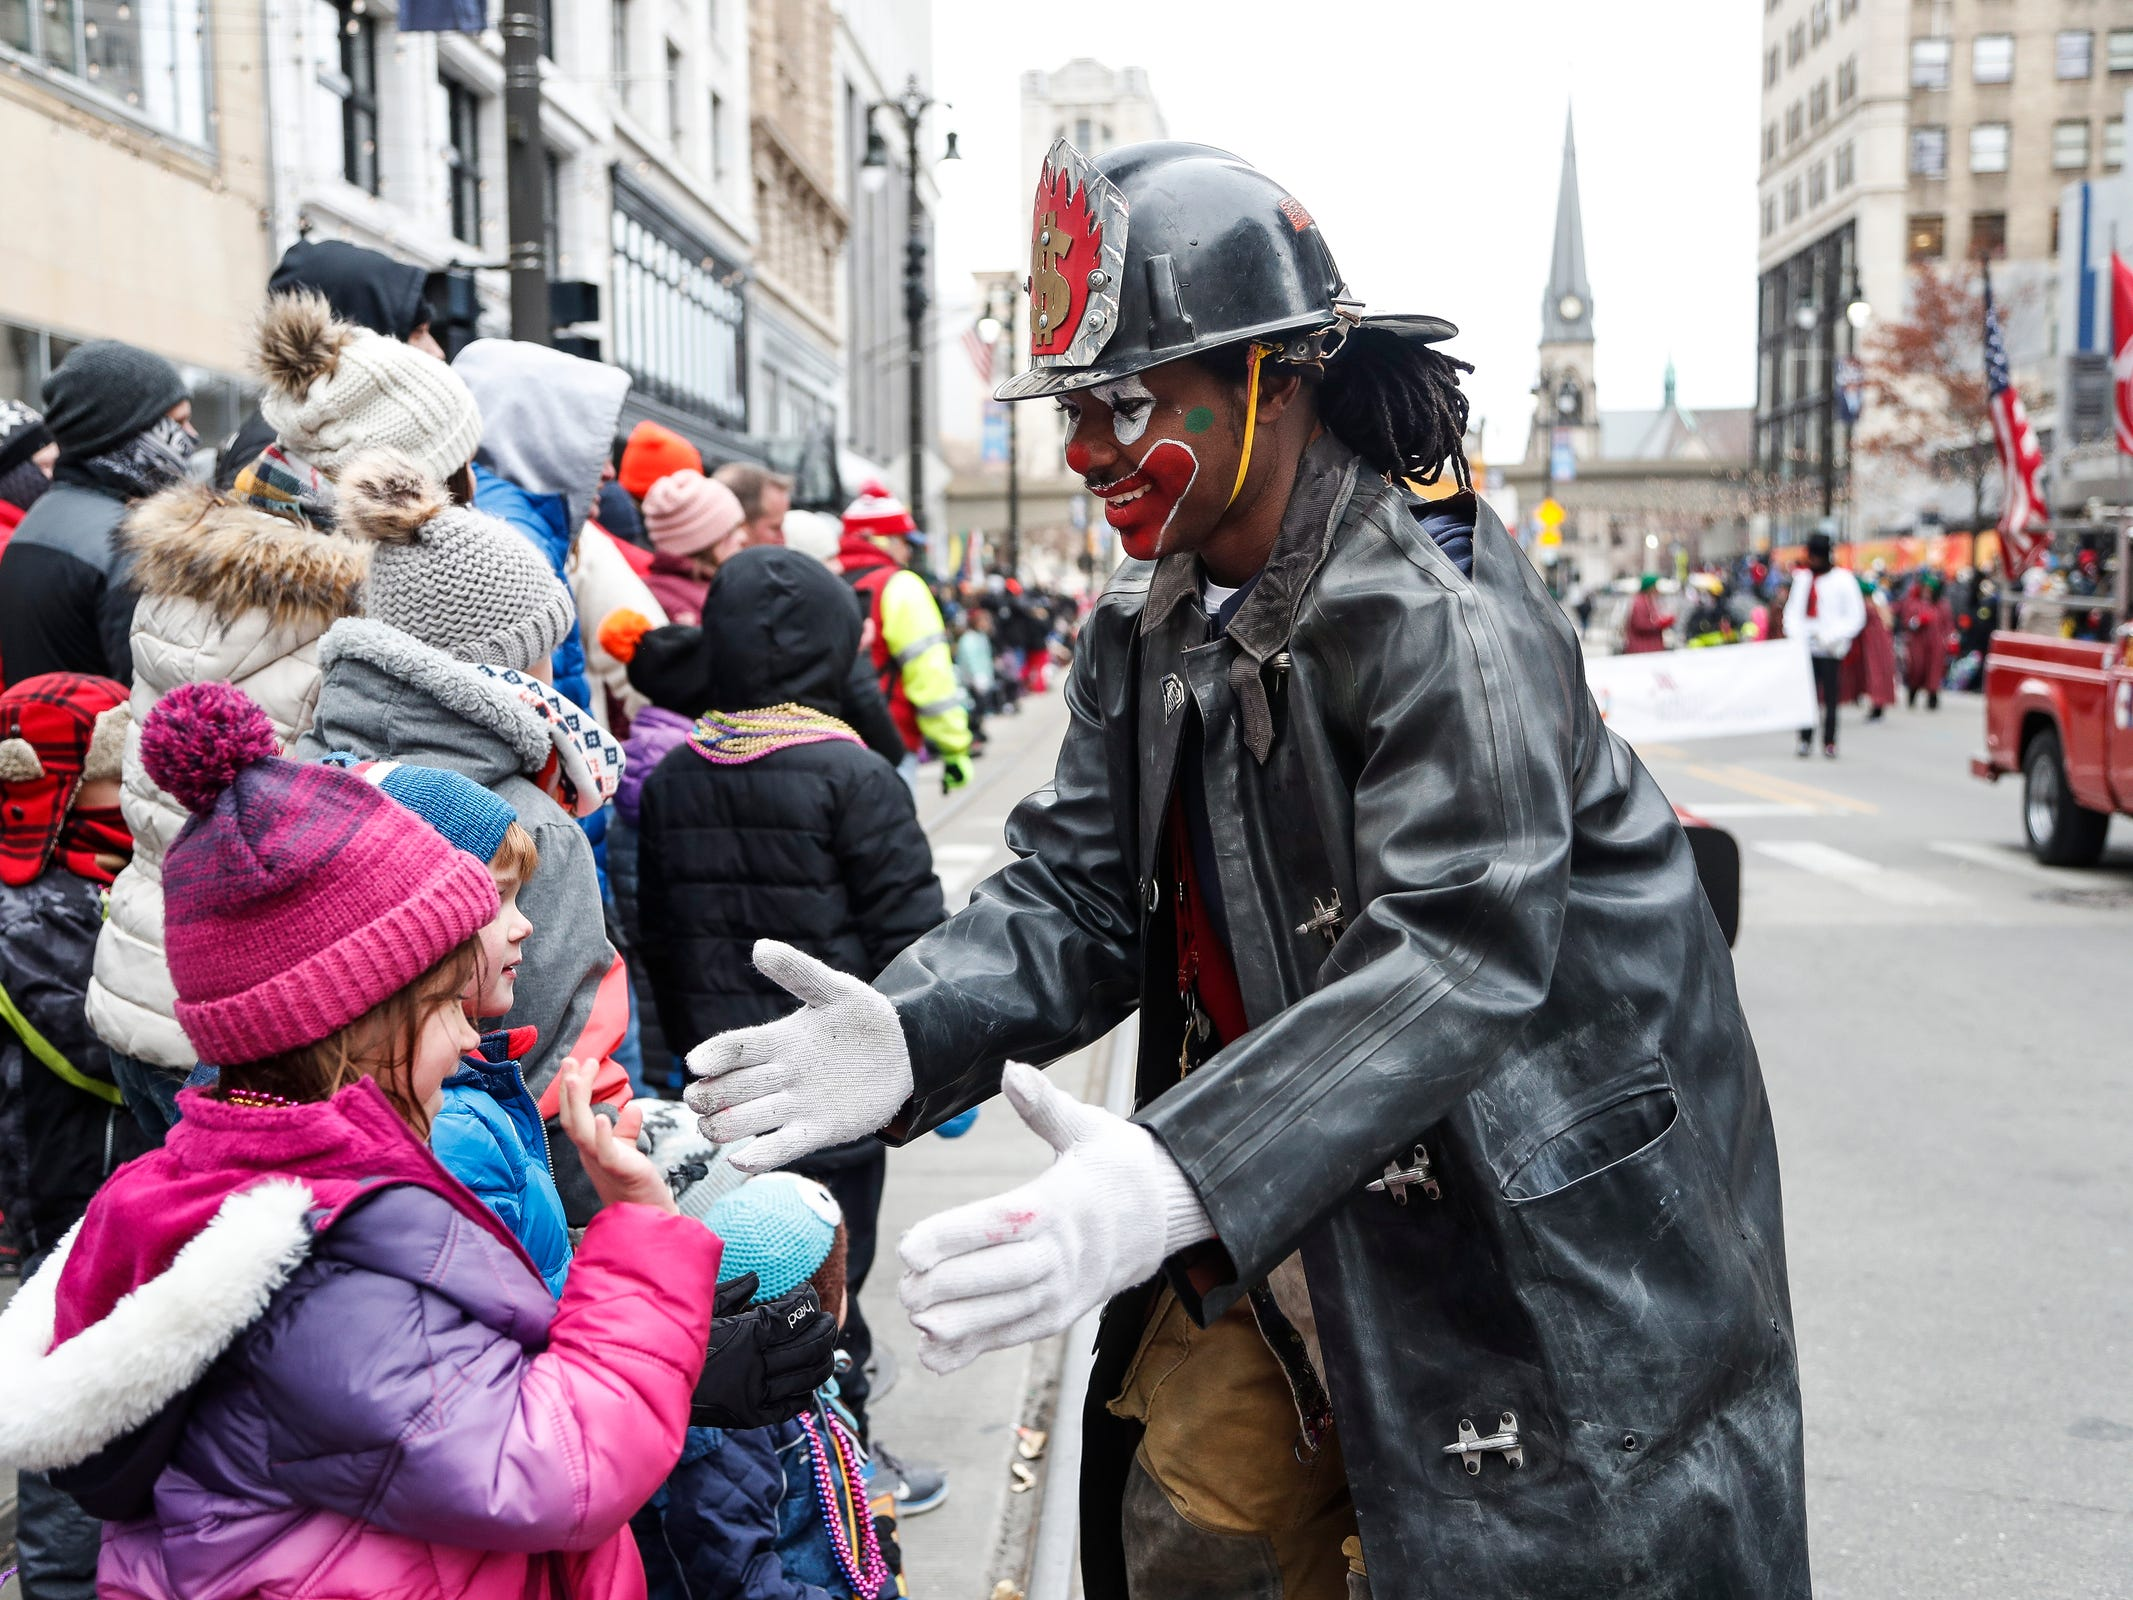 Detroit Fire Department clown Melvin Bills high fives Kate Stucky, 6, and her brother Henry, 4, both of Troy during the 92nd America's Thanksgiving Day Parade in Detroit, Thursday, Nov. 22, 2018.